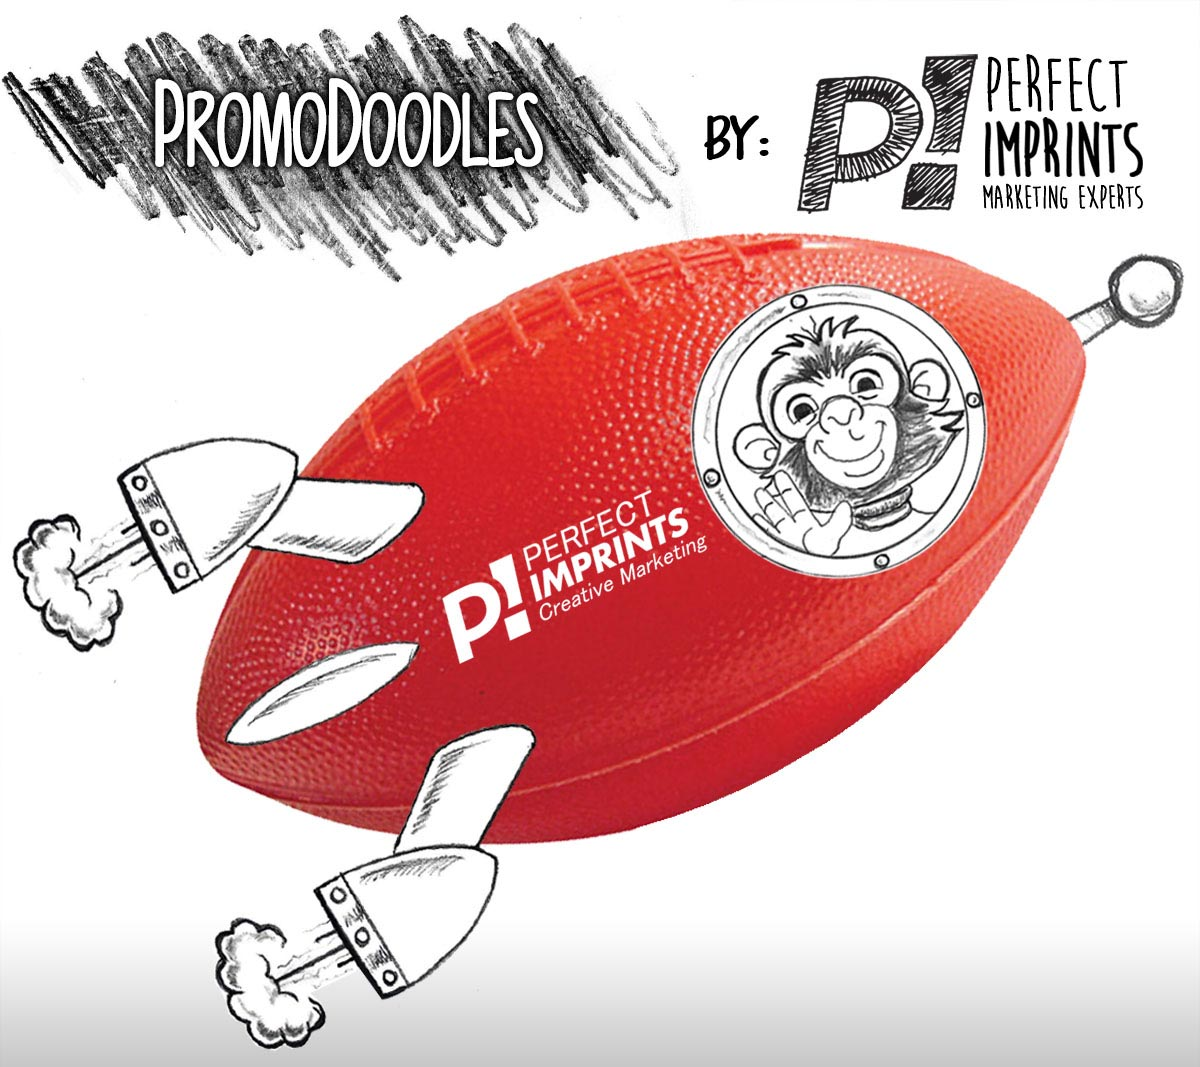 PromoDoodles by Perfect Imprints - Plastic Mini Footballs